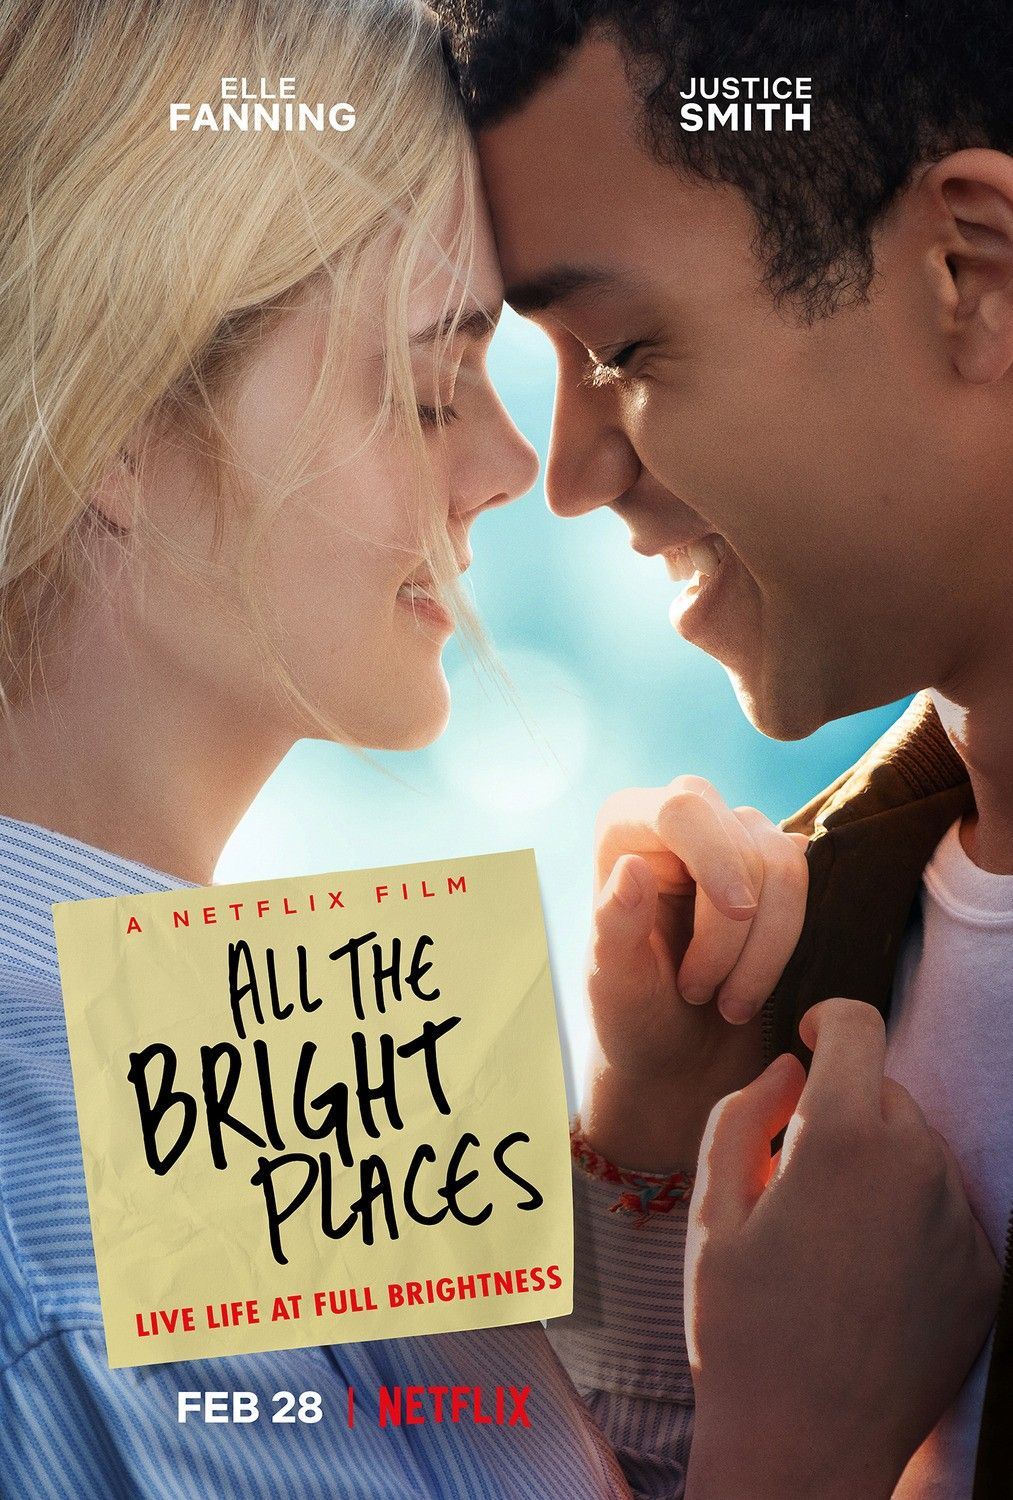 The Poster For The New Netflix Movie All The Bright Places